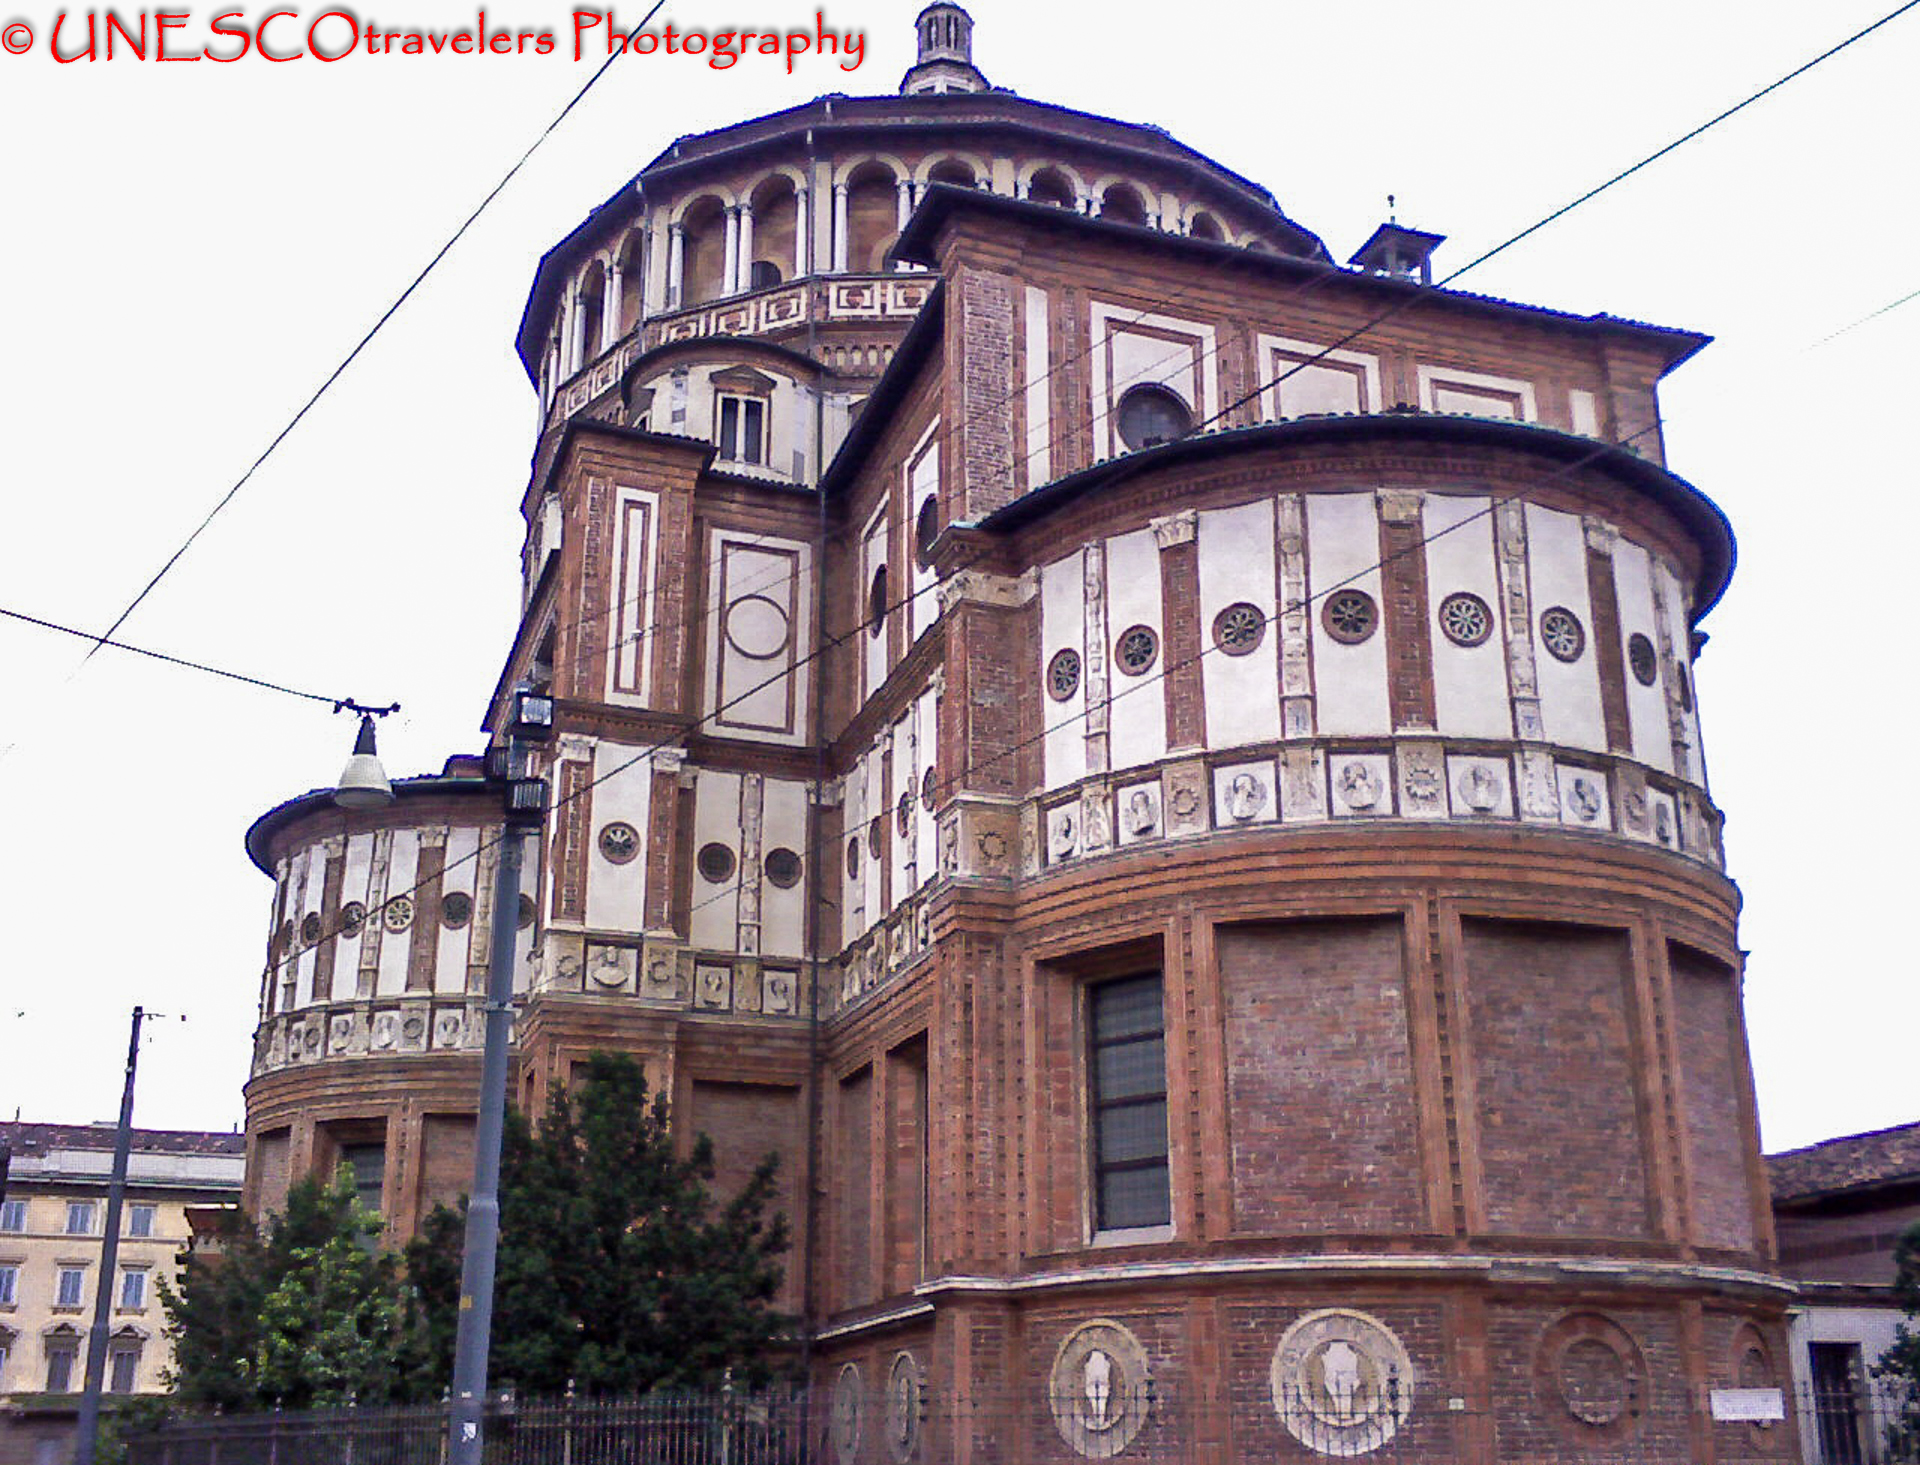 The Last Supper of Christ Church and Dominican Convent of Santa Maria delle Grazie with The Last Supper - Italy By UNESCOtravelers